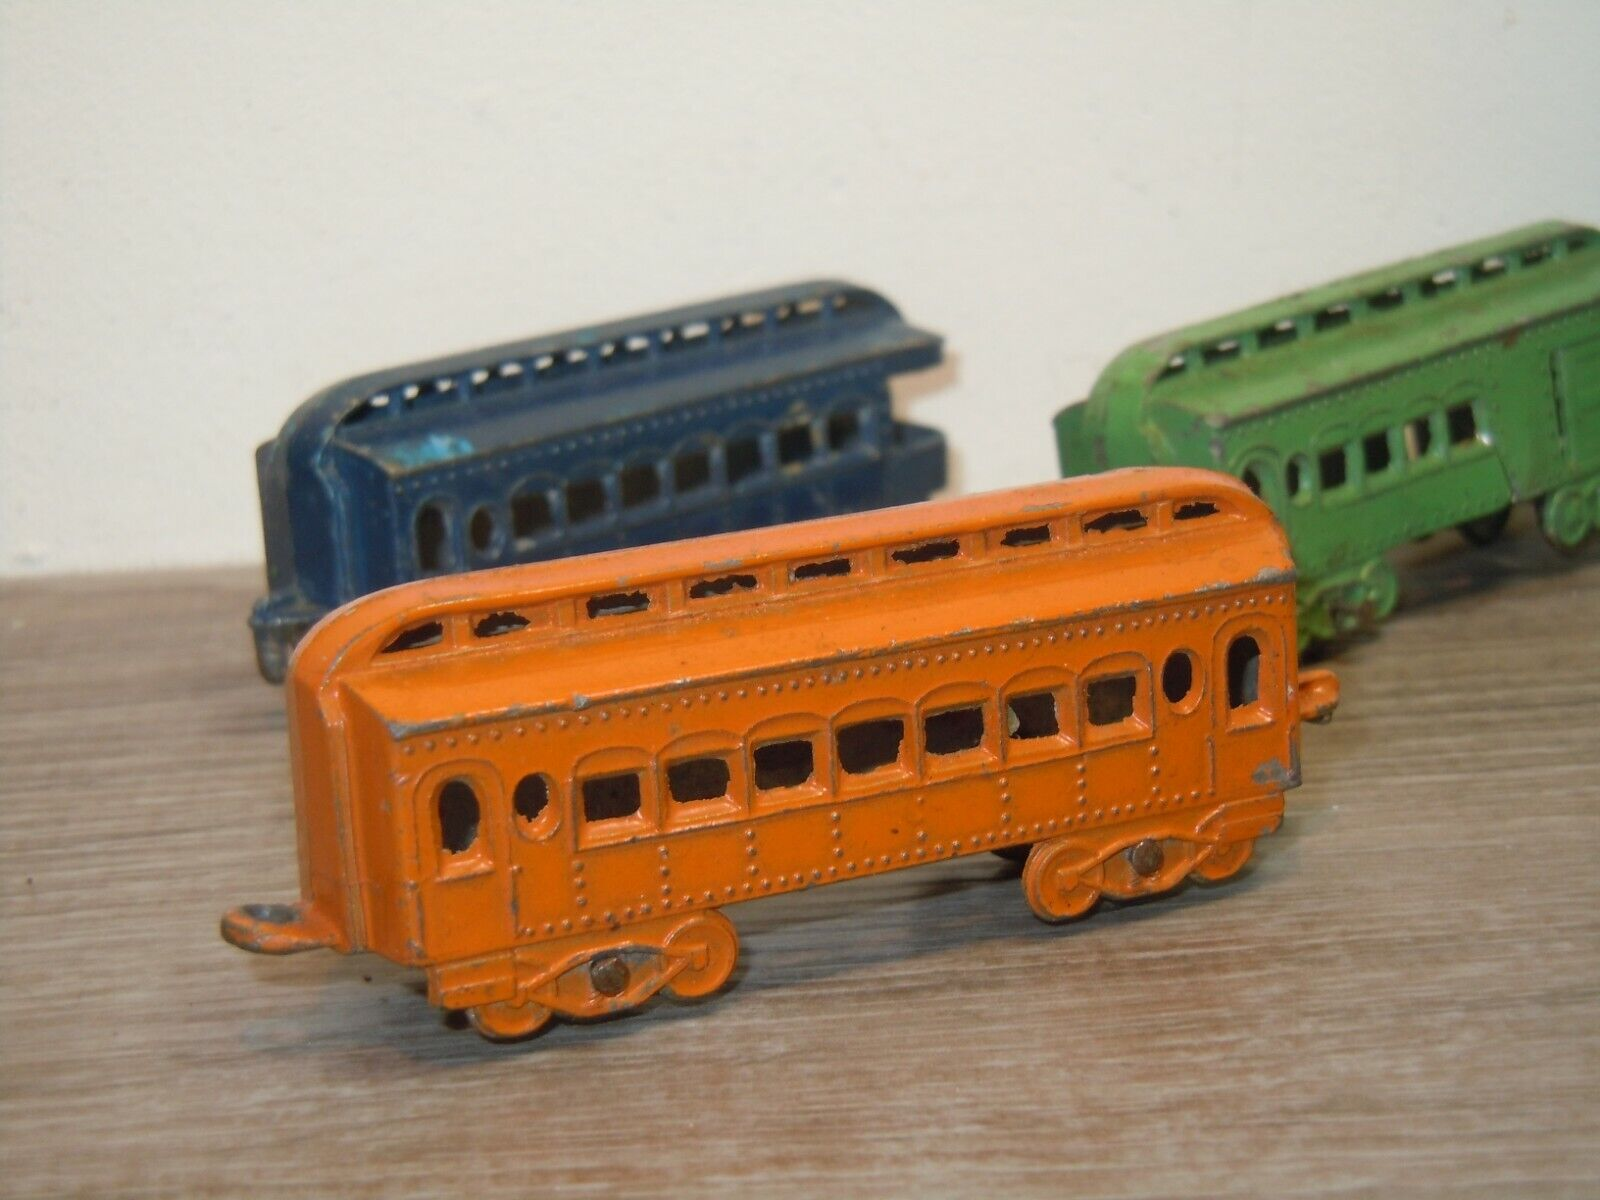 Locomotive & 3 Wagons - Tootsie Toy Toy Toy 37161 d22245